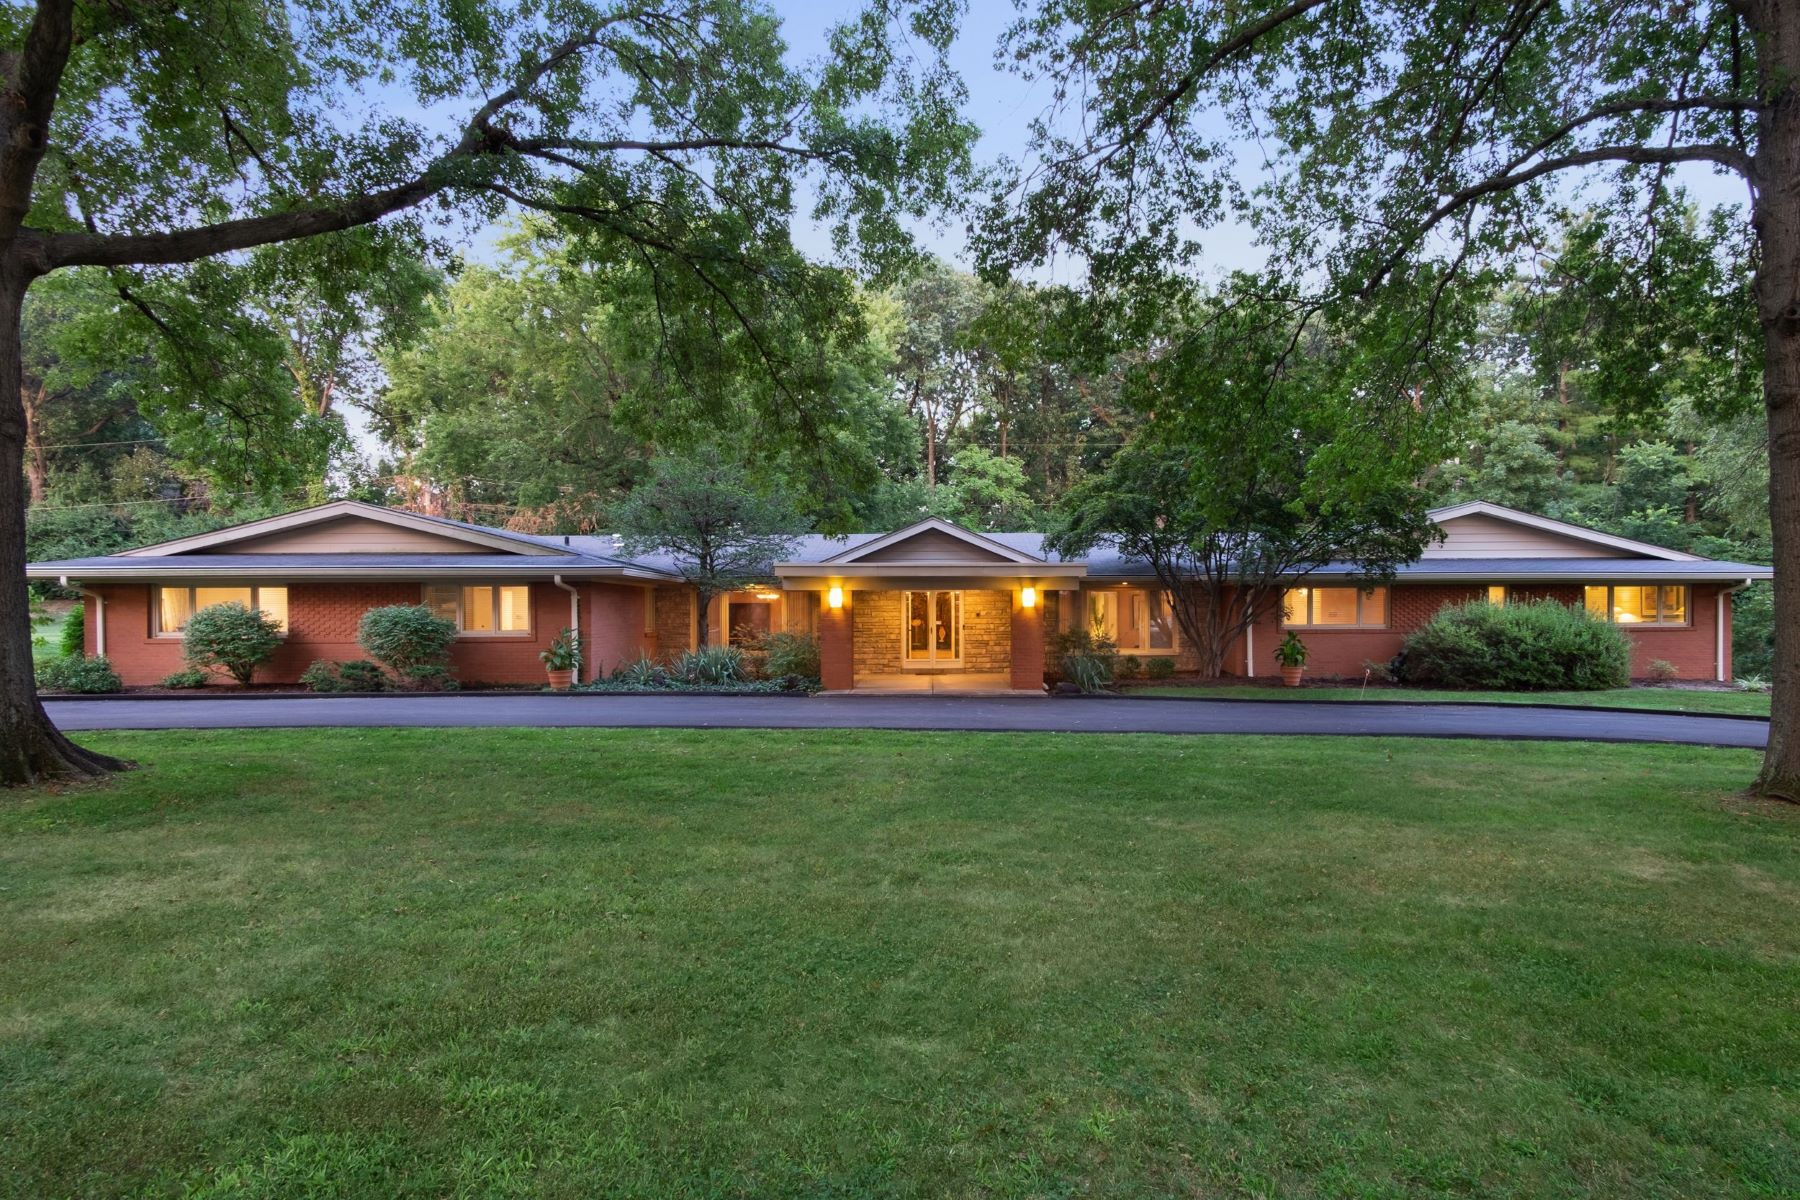 Single Family Homes for Sale at Sophisticated Mid-Century Modern Ladue Home 76 Ladue Estates Drive Creve Coeur, Missouri 63141 United States